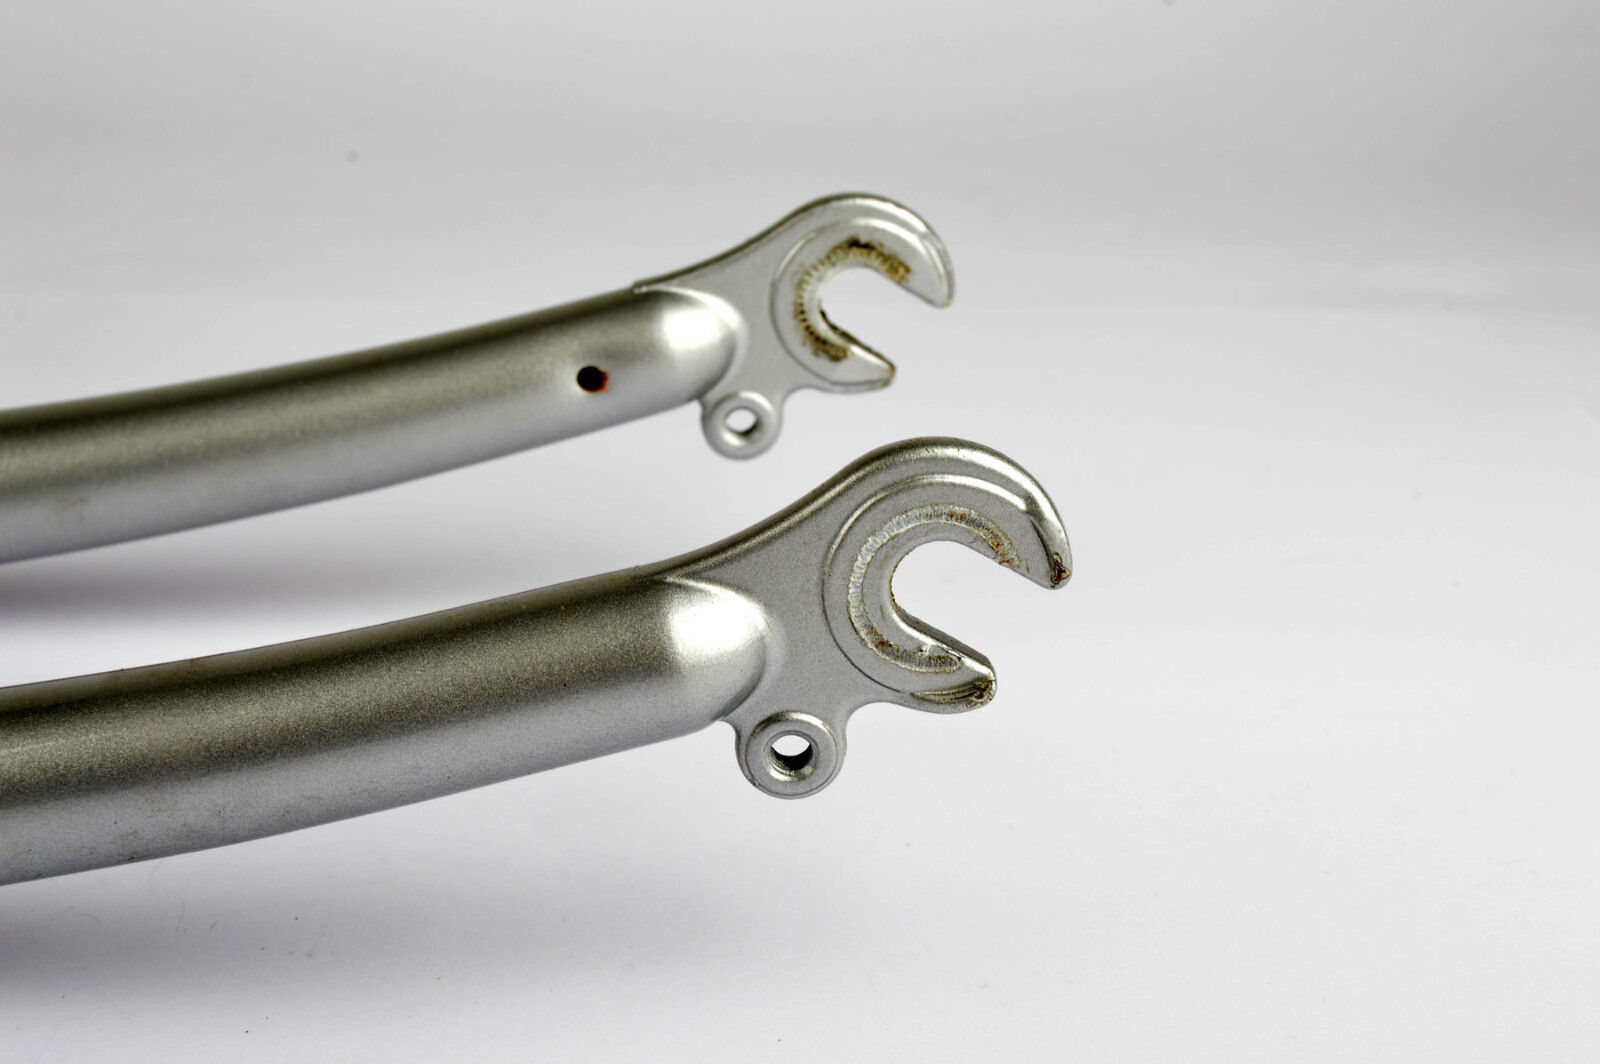 28  MTB steel Fork with Low Rider braze-ons braze-ons braze-ons from the 1990s  | Deutschland München  bbe35a